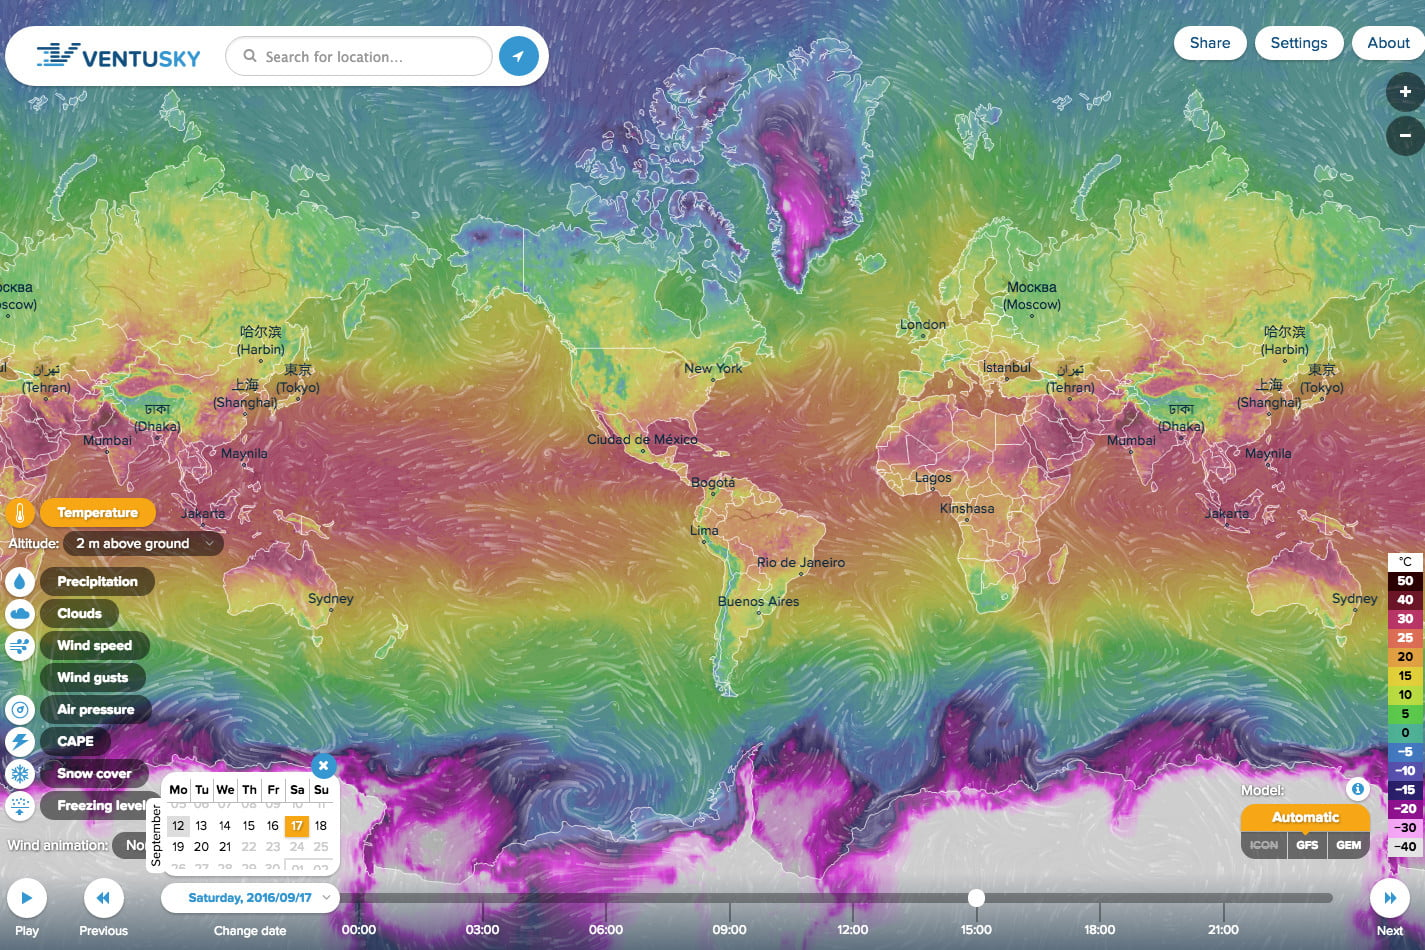 Ventusky is a beautiful weather map quite unlike any other